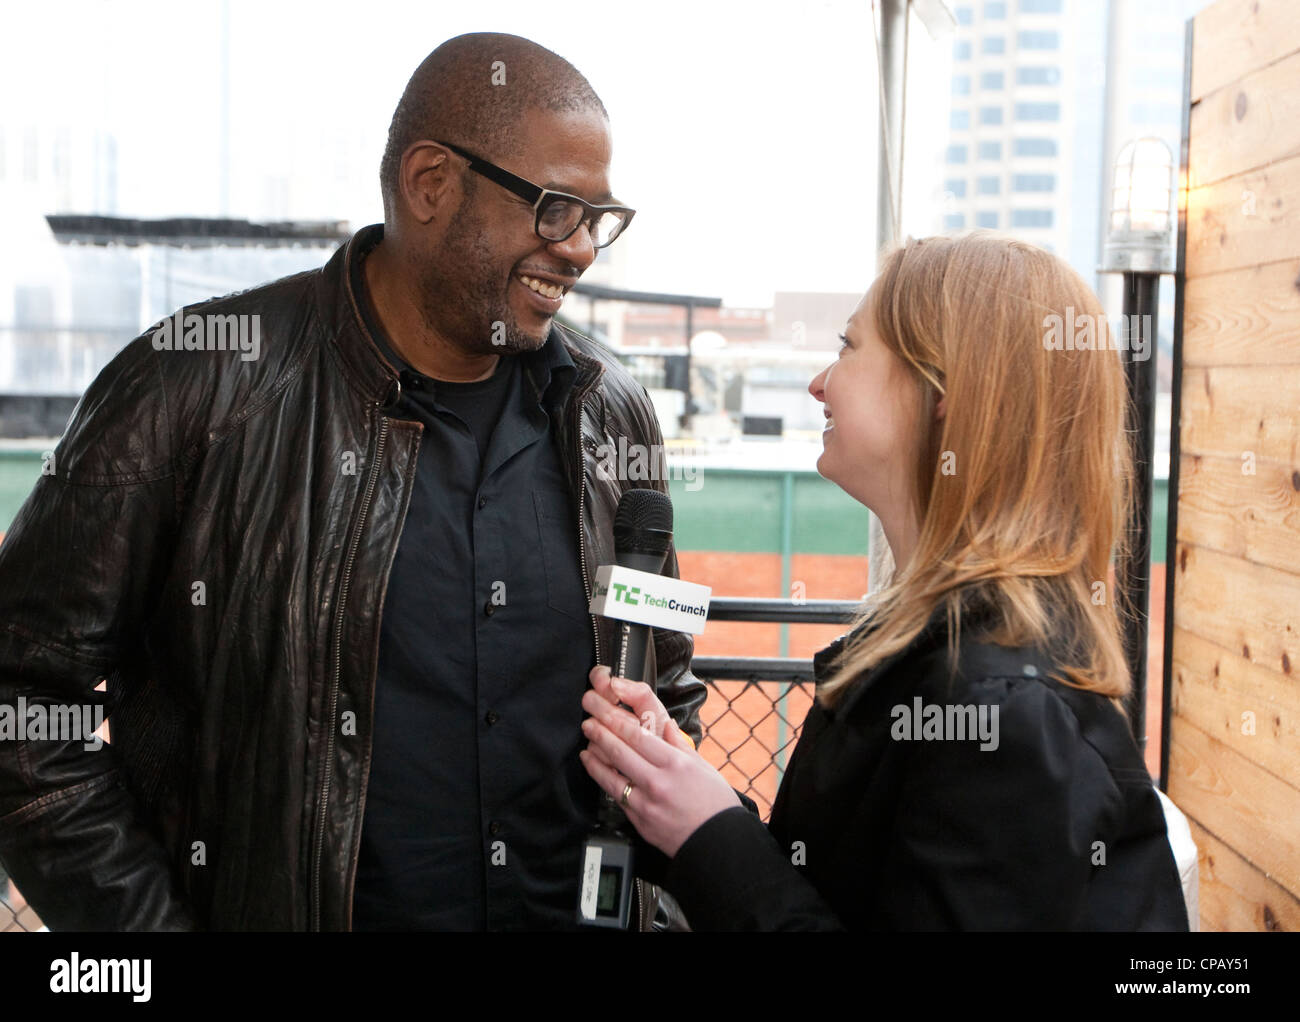 Texas born American Academy Award winner Forest Whitaker, speaks to reporter at SXSW event in Austin, Texas - Stock Image